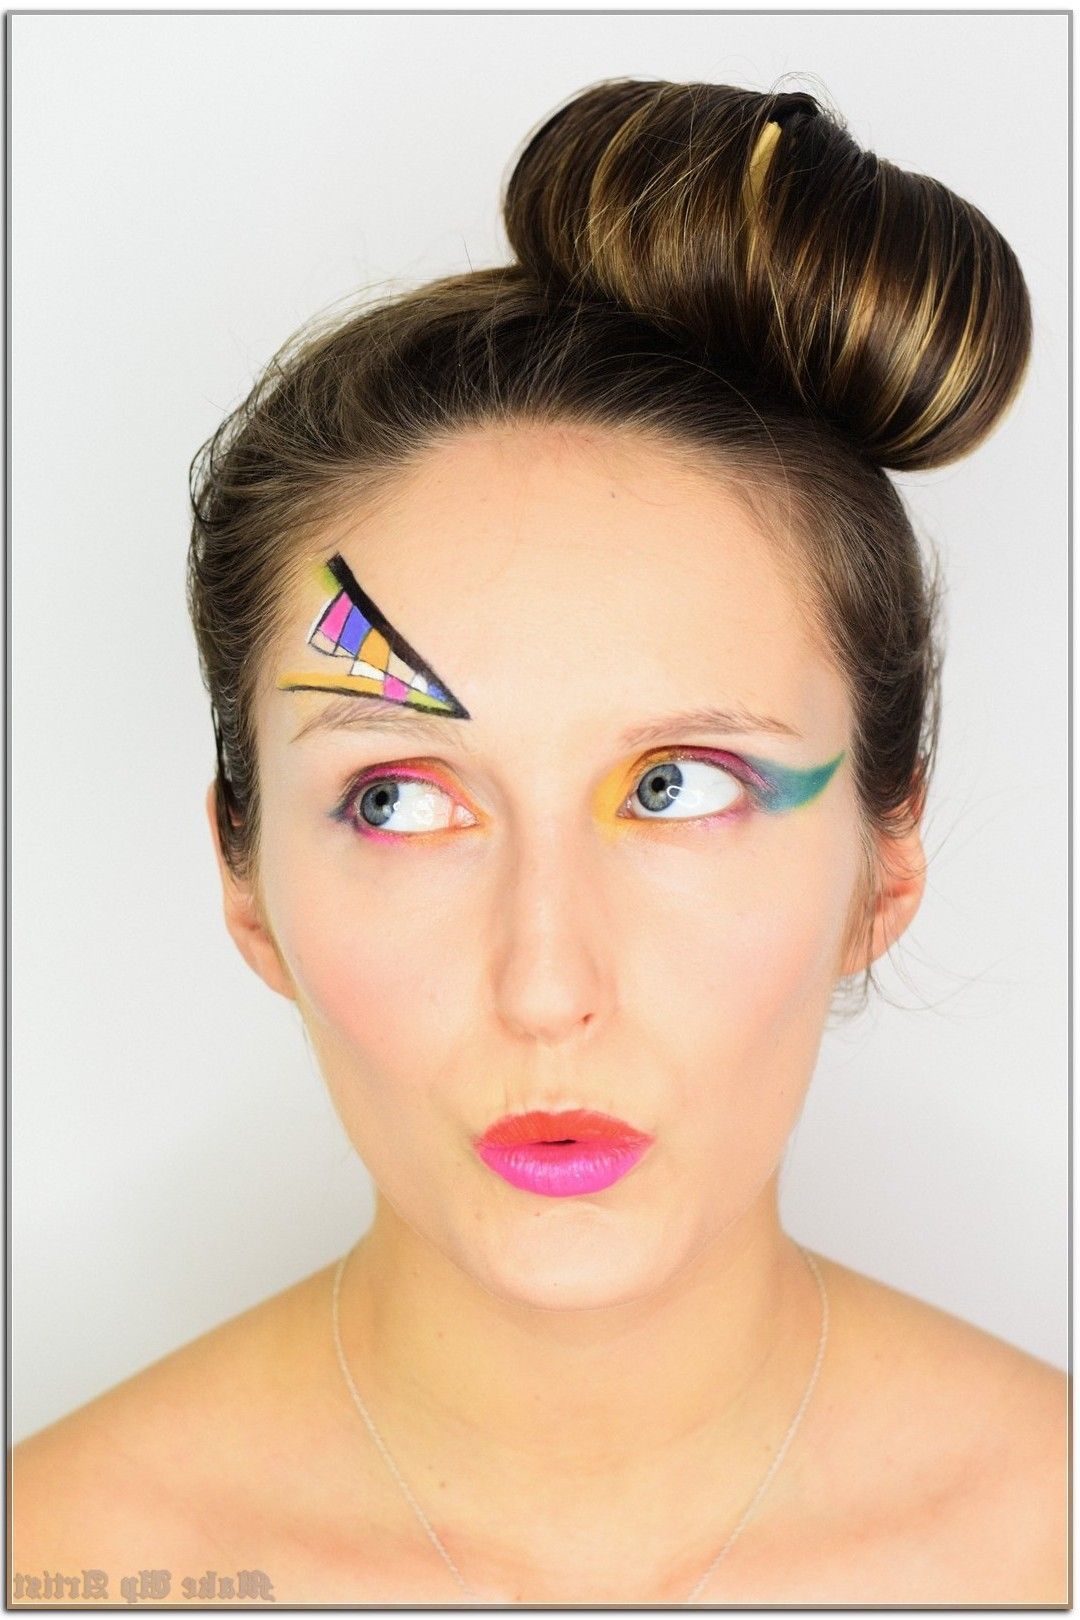 15 Creative Ways You Can Improve Your Make Up Artist